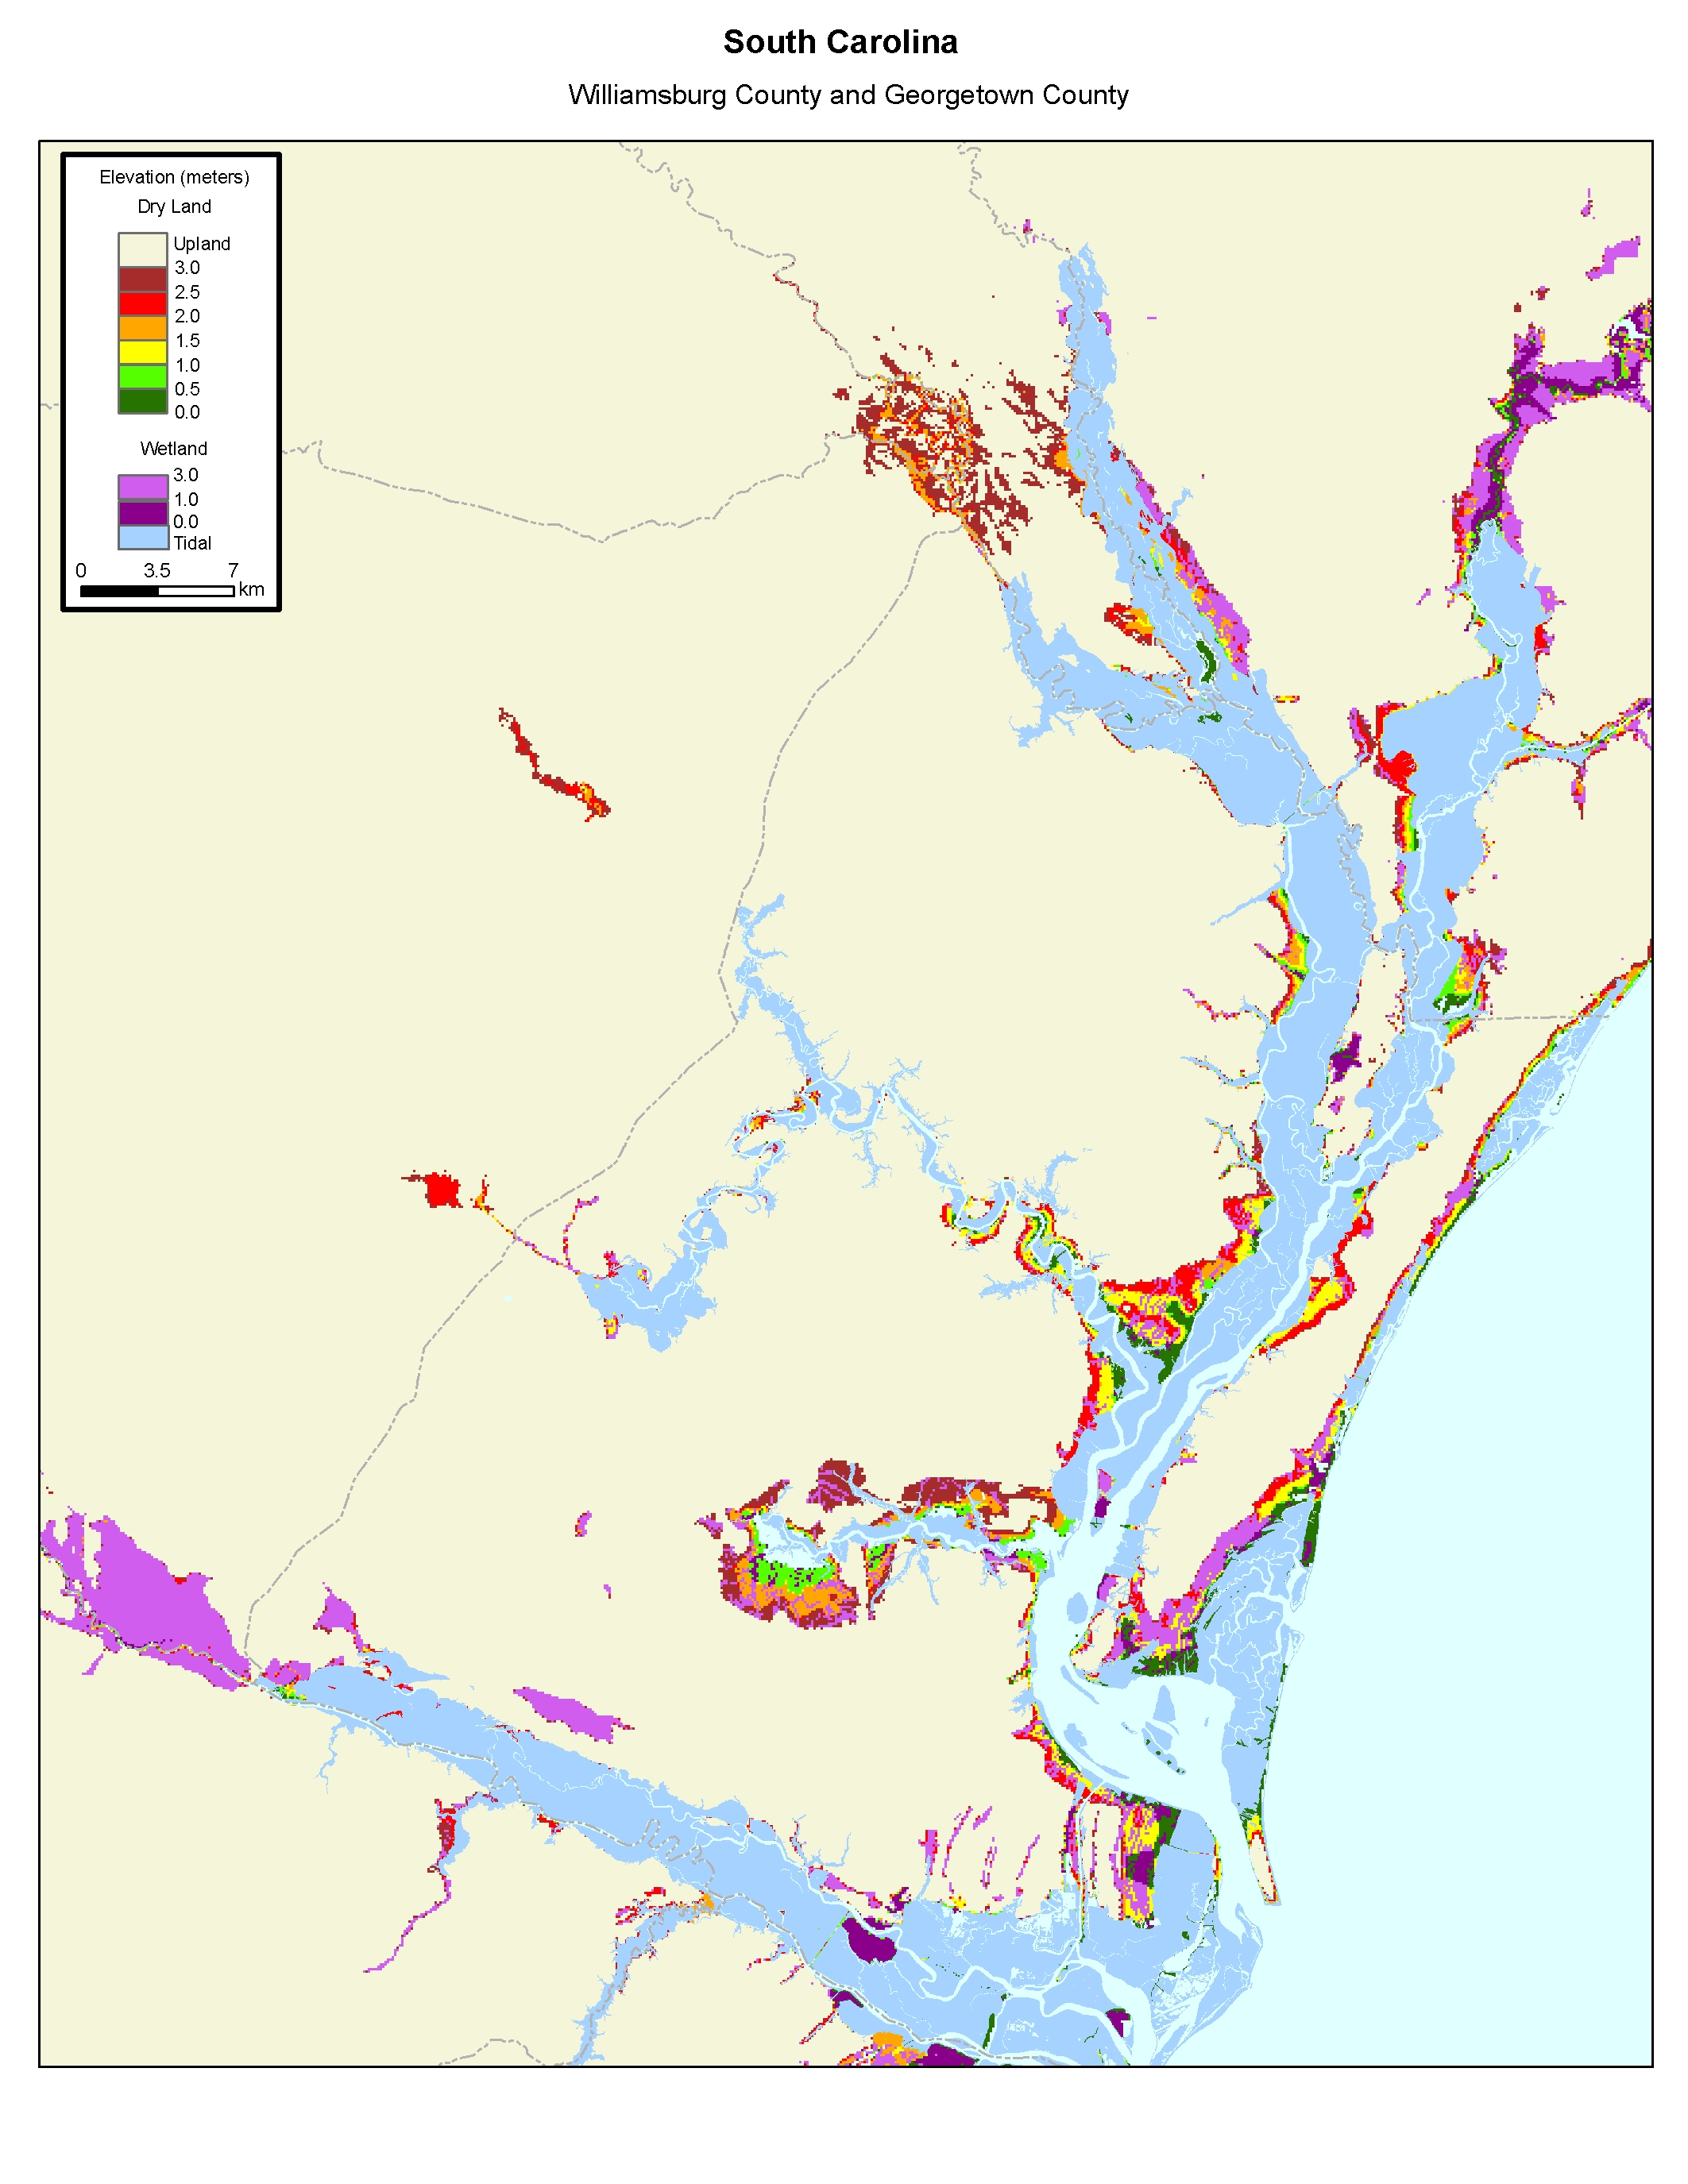 More Sea Level Rise Maps of South Carolina Sc State Map With Counties on sc state map by cities, a-z counties, nc counties, sc state outline, map of south carolina showing counties, sc map with counties marked, sc state congressional districts map, s carolina counties, sc zip code map, map of south georgia counties, sc highway map counties, sc river systems map, sc state seal, sc county map, sc regional map, upstate sc counties, sc state map showing counties, sc state university campus map, south carolina state counties,